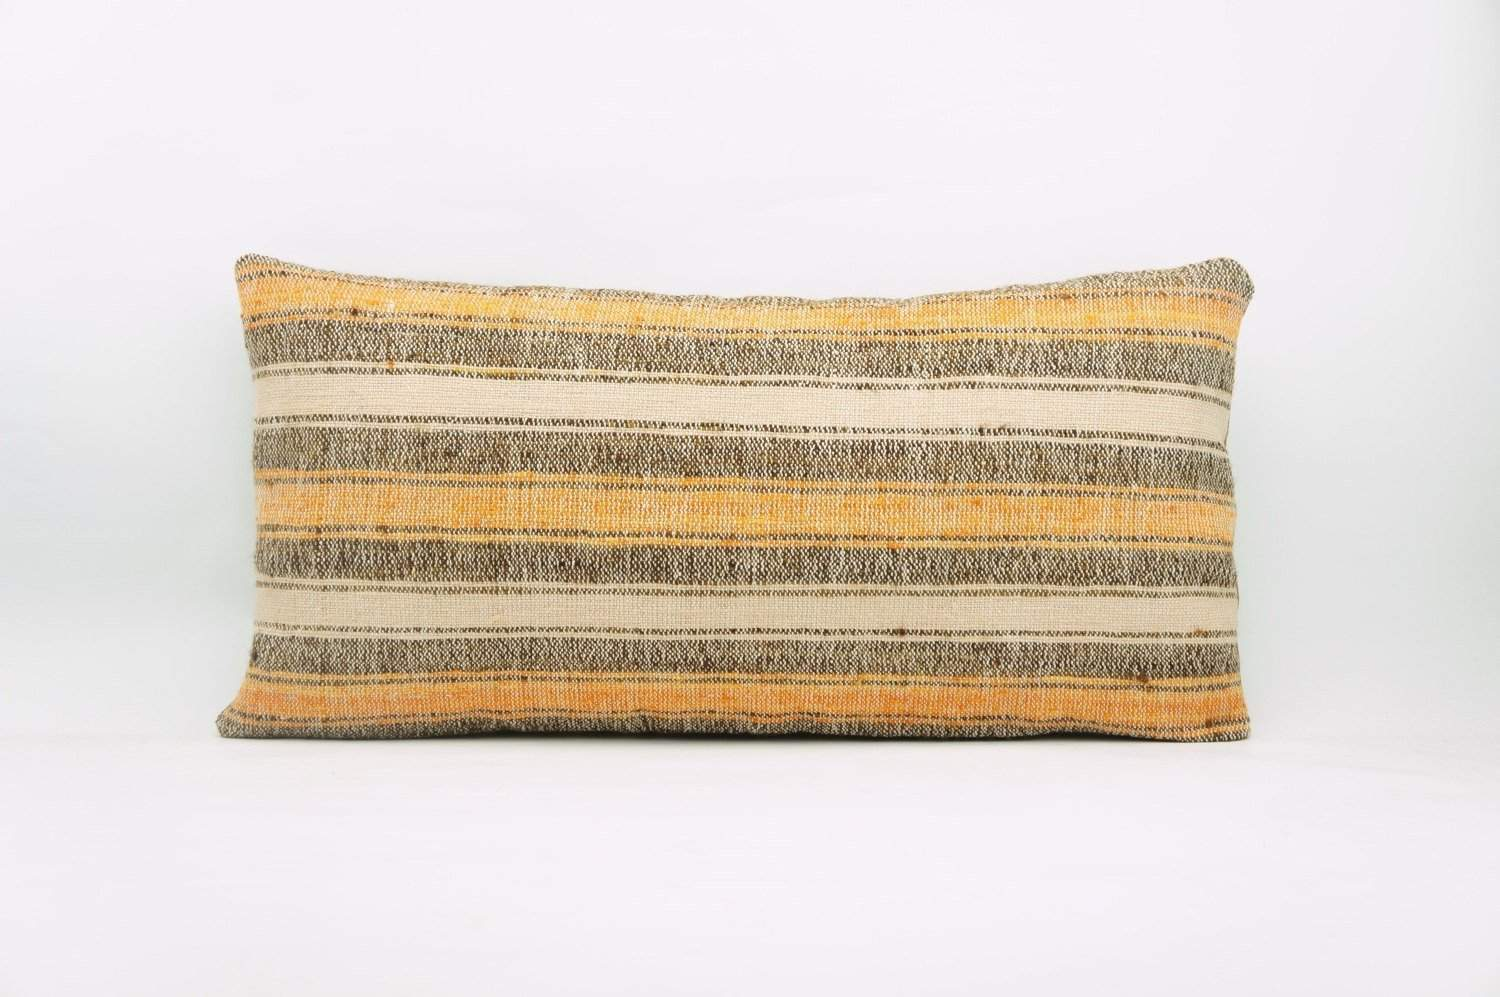 12x24 Vintage Hand Woven Kilim Pillow Lumbar Bohemian pillow case, Modern home decor orange white brown striped 958